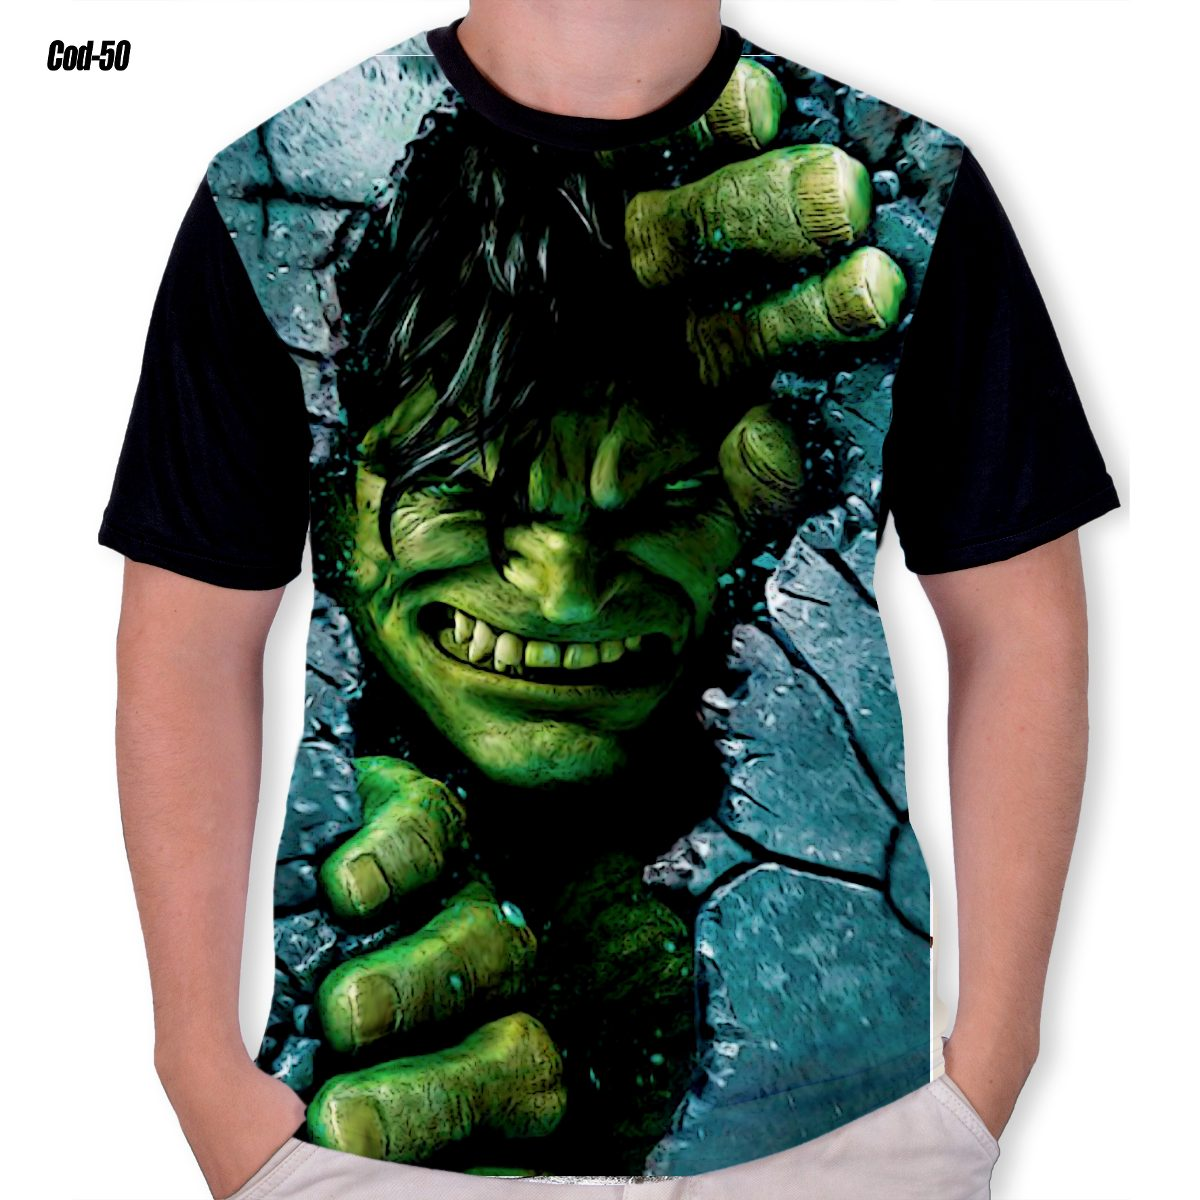 0e5be8f145605 Camisa The Hulk 3d Animes Filmes Hqs